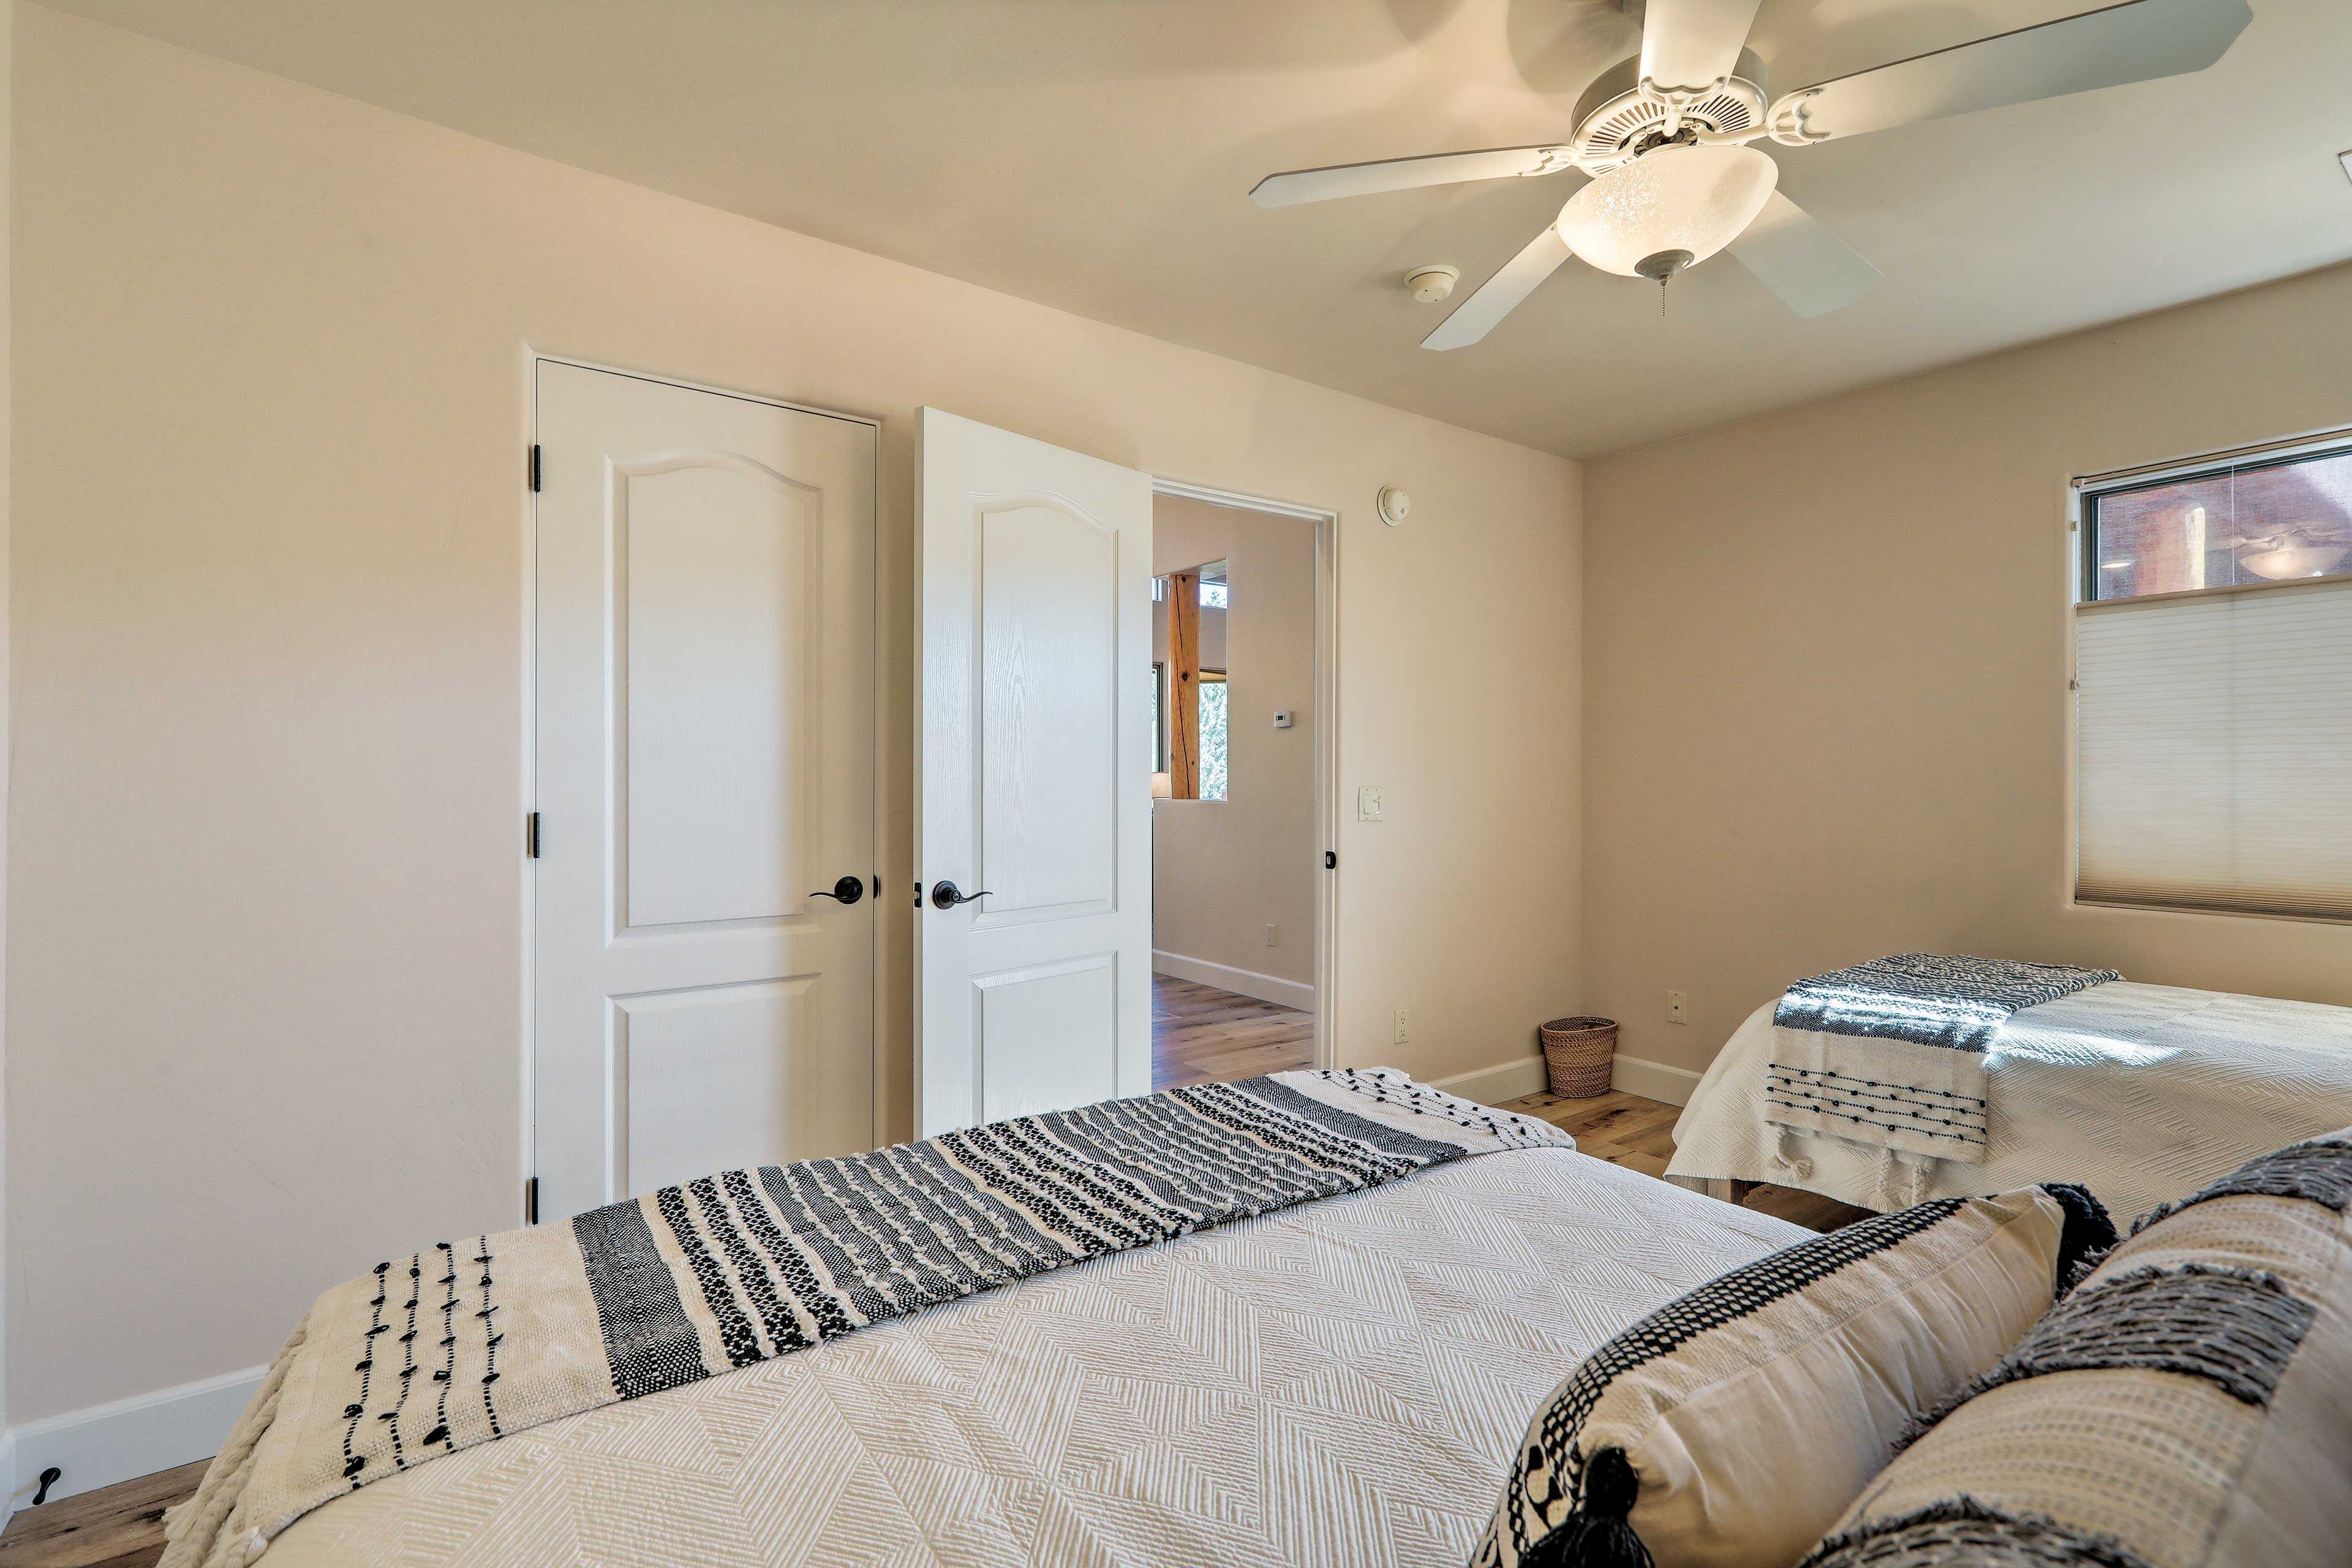 It features a queen bed, twin bed, and ample storage space.